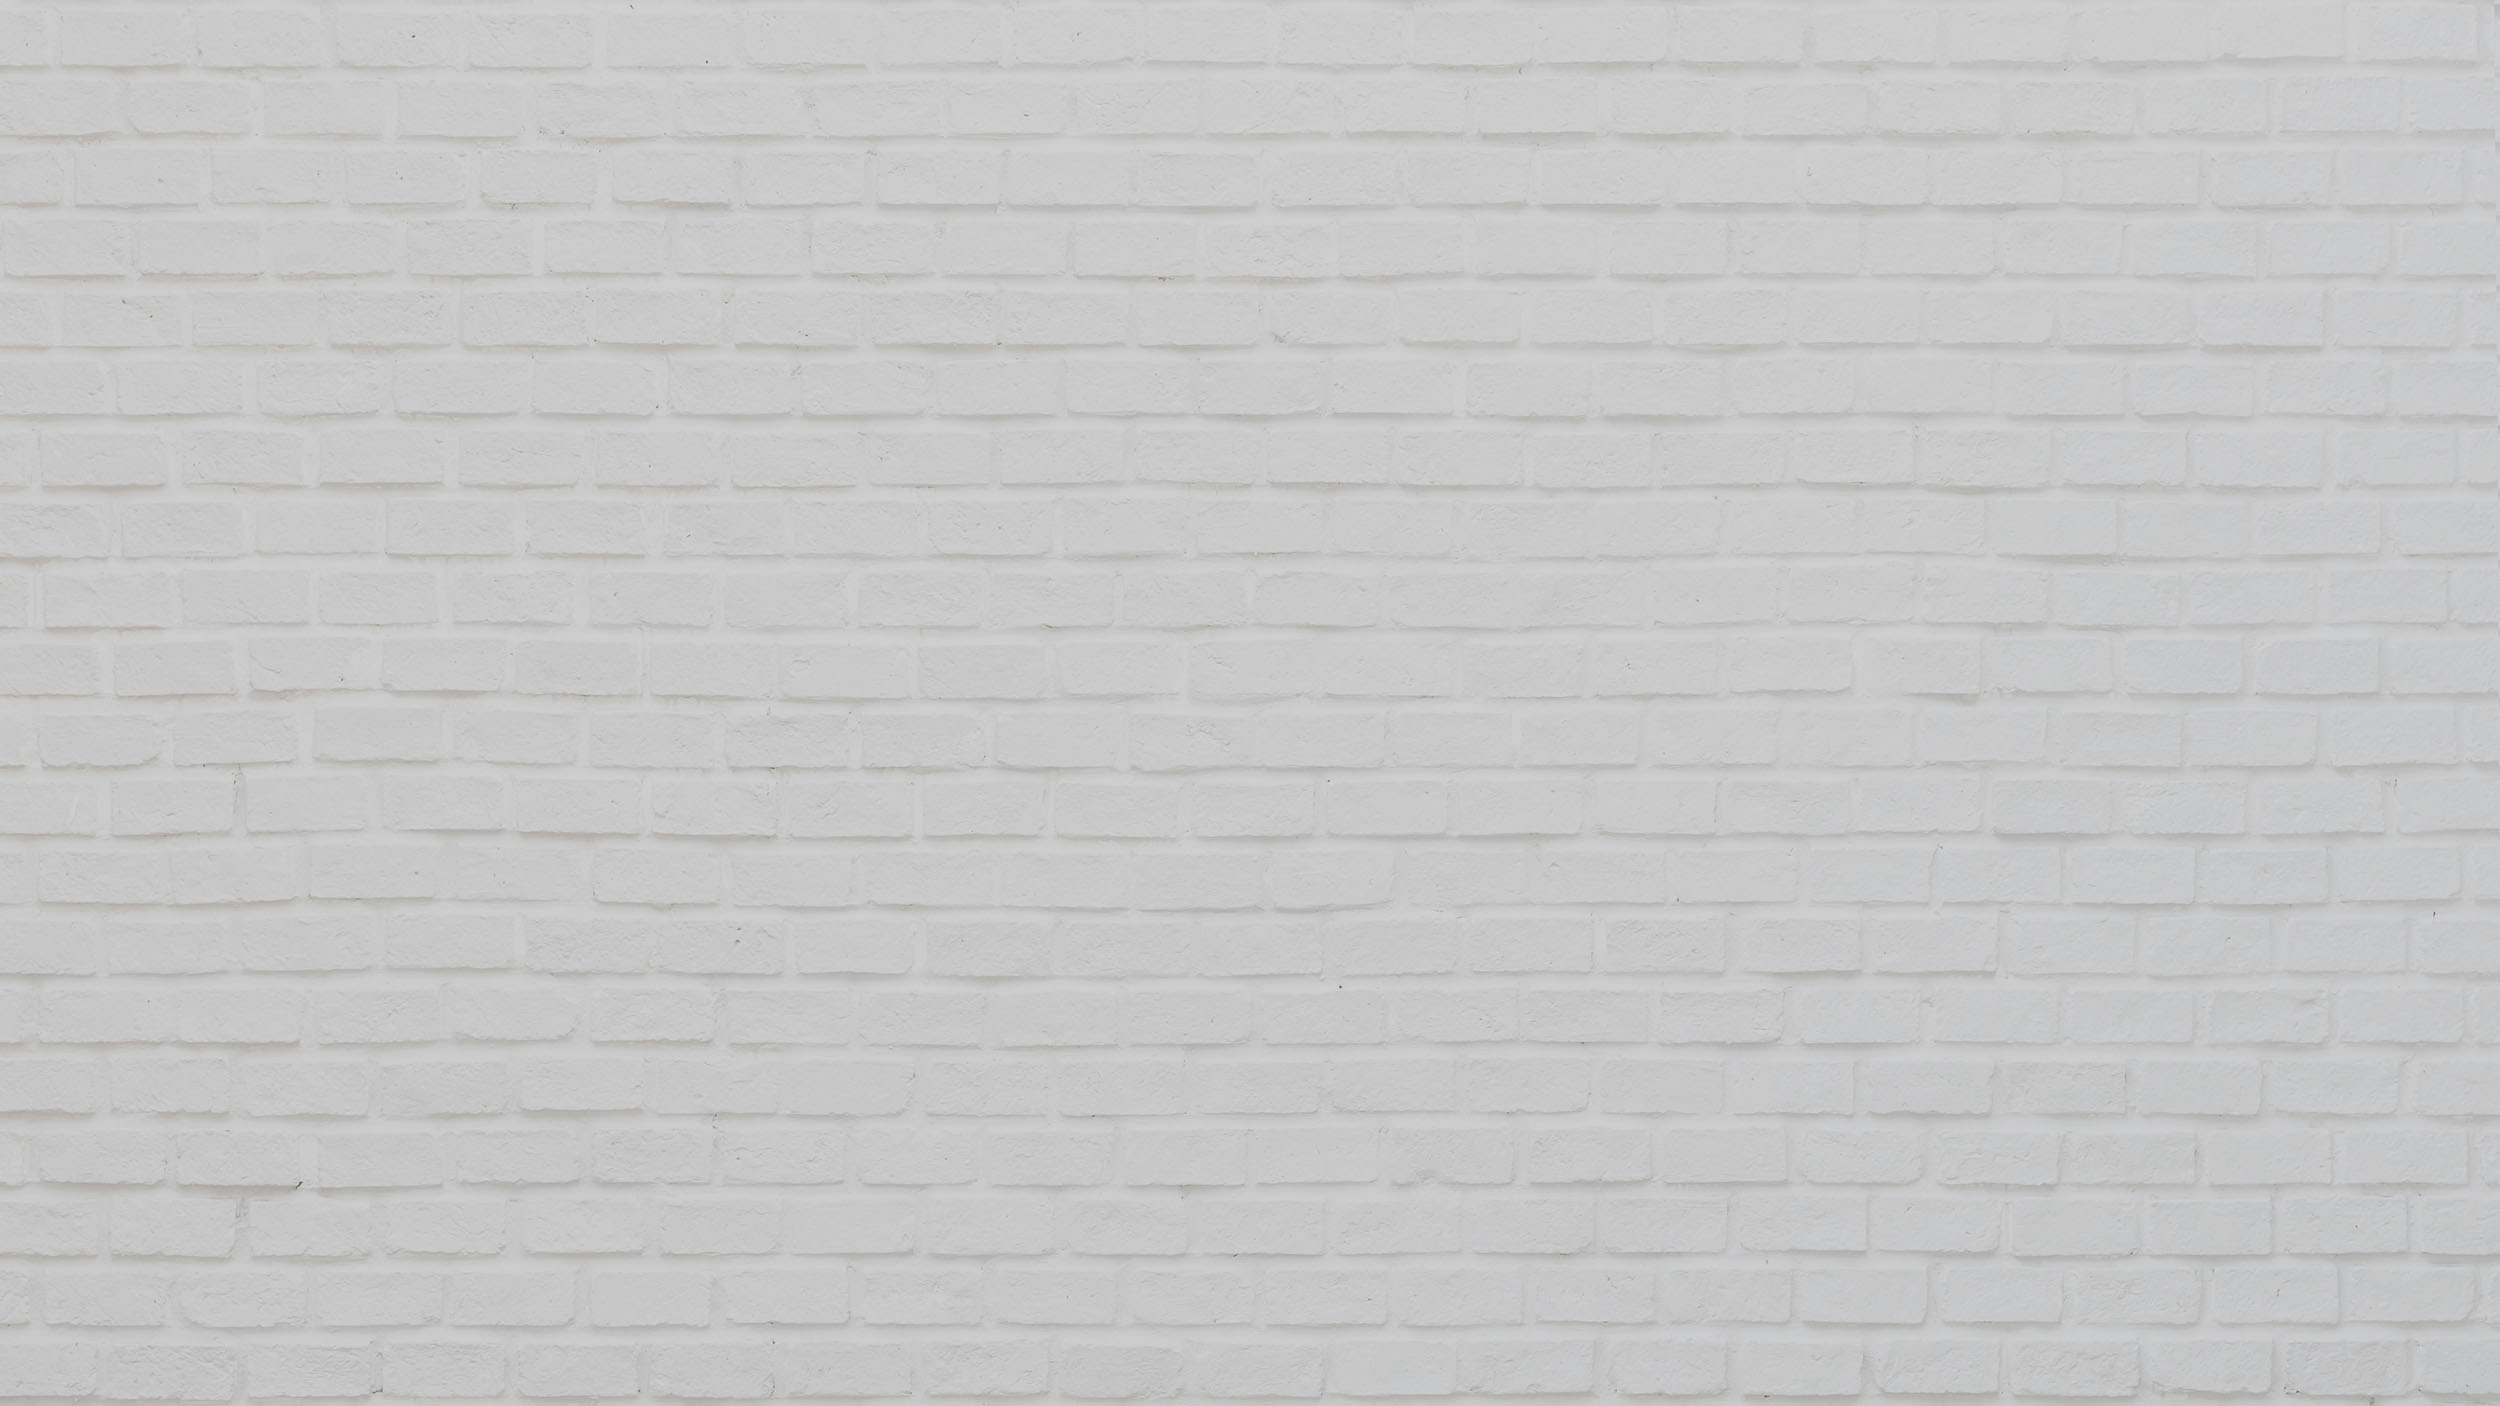 White brick wall texture background for stone tile block painted